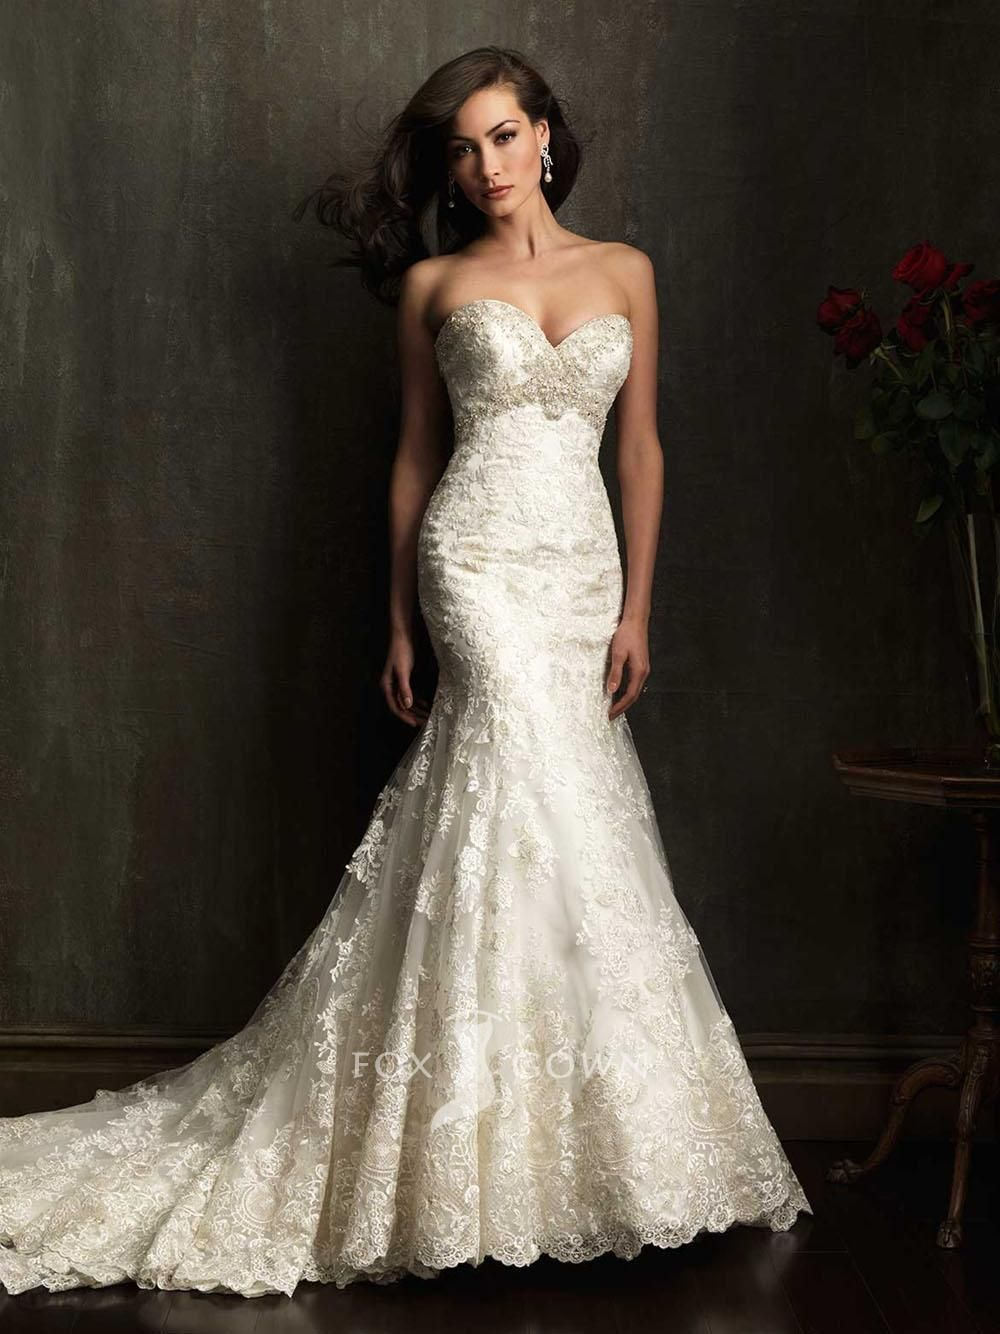 New GORGEOUS FIT uc lace trumpet sweetheart strapless slim wedding dress Allure Bridals Style